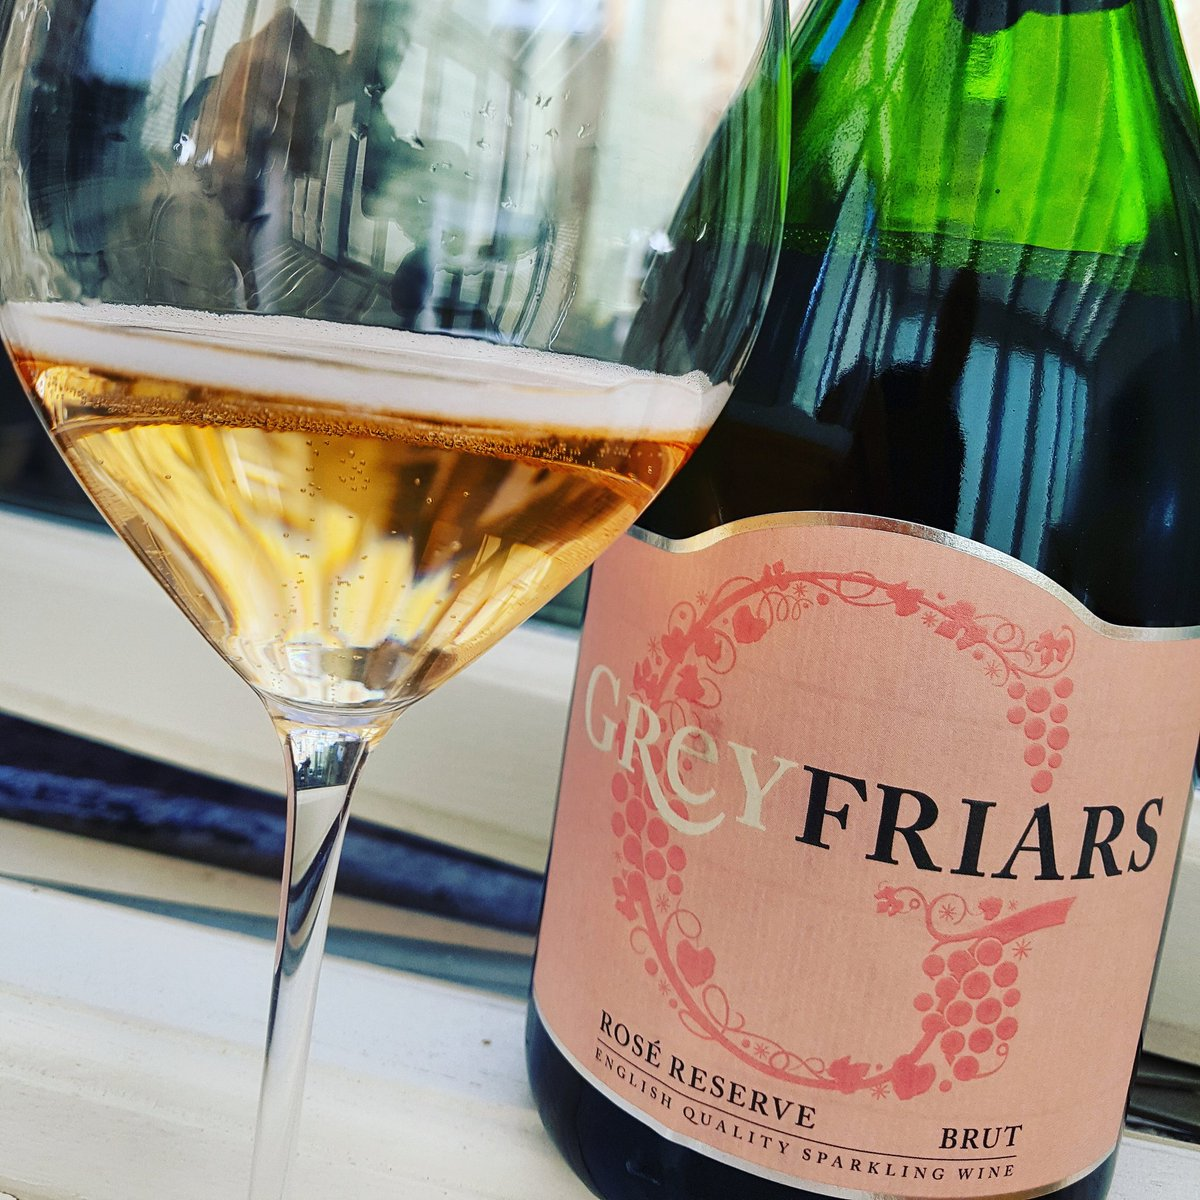 Greyfriars Wine Tasting Dinner 4th July 2019